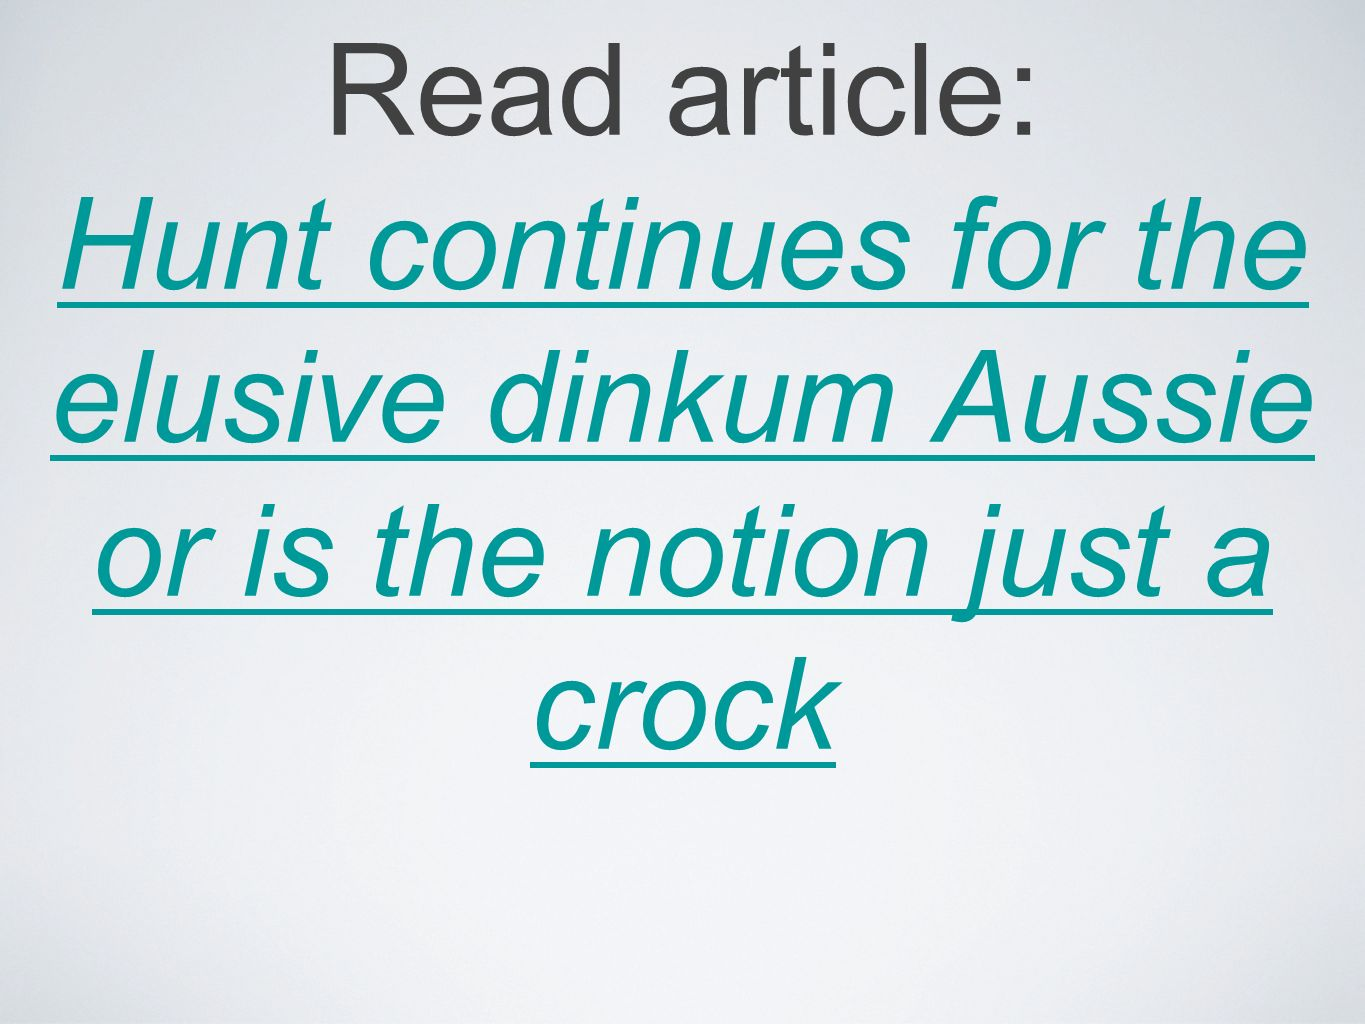 Read article: Hunt continues for the elusive dinkum Aussie or is the notion just a crock Hunt continues for the elusive dinkum Aussie or is the notion just a crock